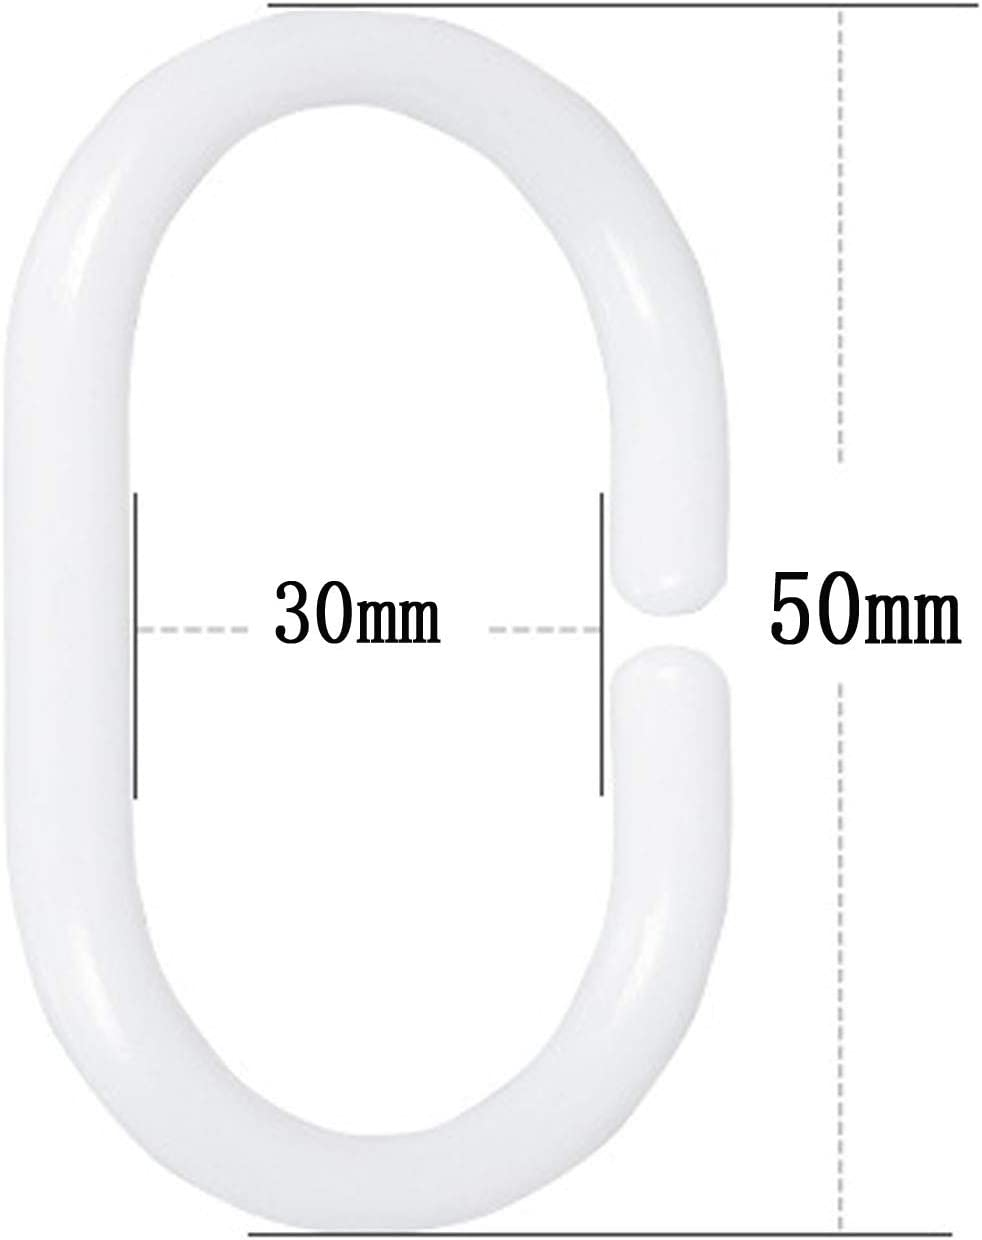 Guang-T Shower Curtain Rings 30-Pack Bathroom Curtain Hook Curtain Poles Shower Rod Hook Hanger White Color Plastic Ring Bath Drape Loop Clasp Drapery Home White